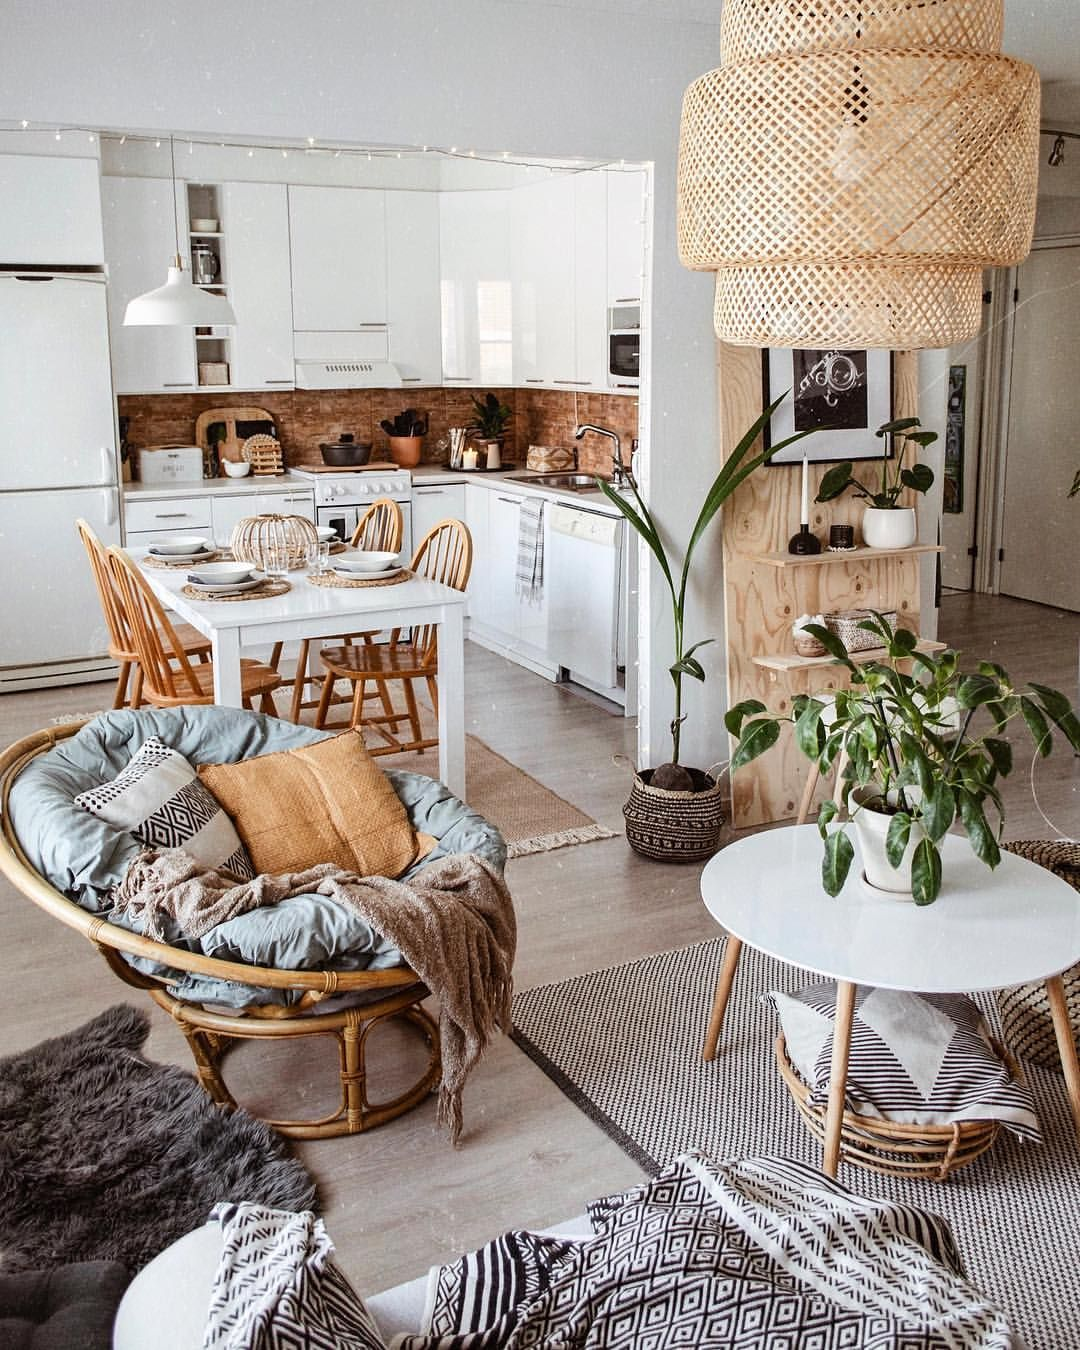 This Long Weekend Makes Me A Bit Confused What Day Is It Is There Anyone Else W Decoracion De Interiores Salones Decoracion De Interiores Interiores De Casa